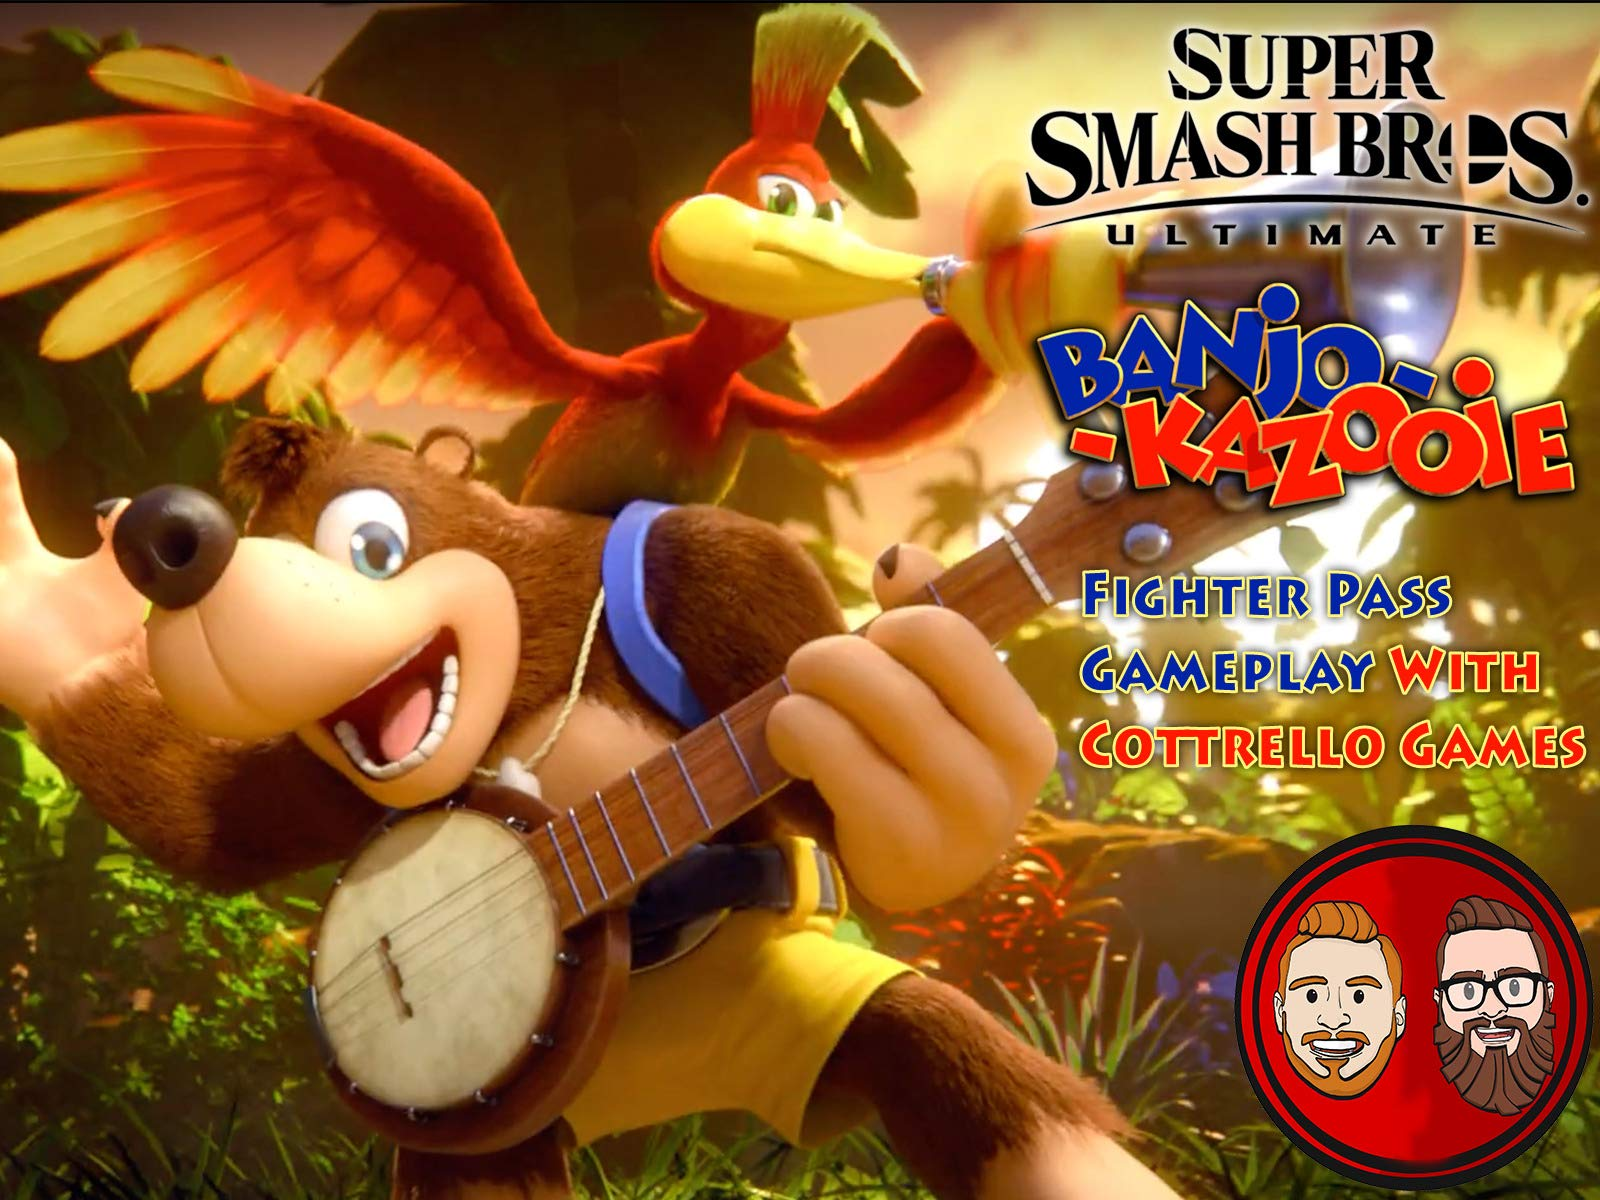 Super Smash Bros. Ultimate: Banjo-Kazooie Fighter Pass Gameplay